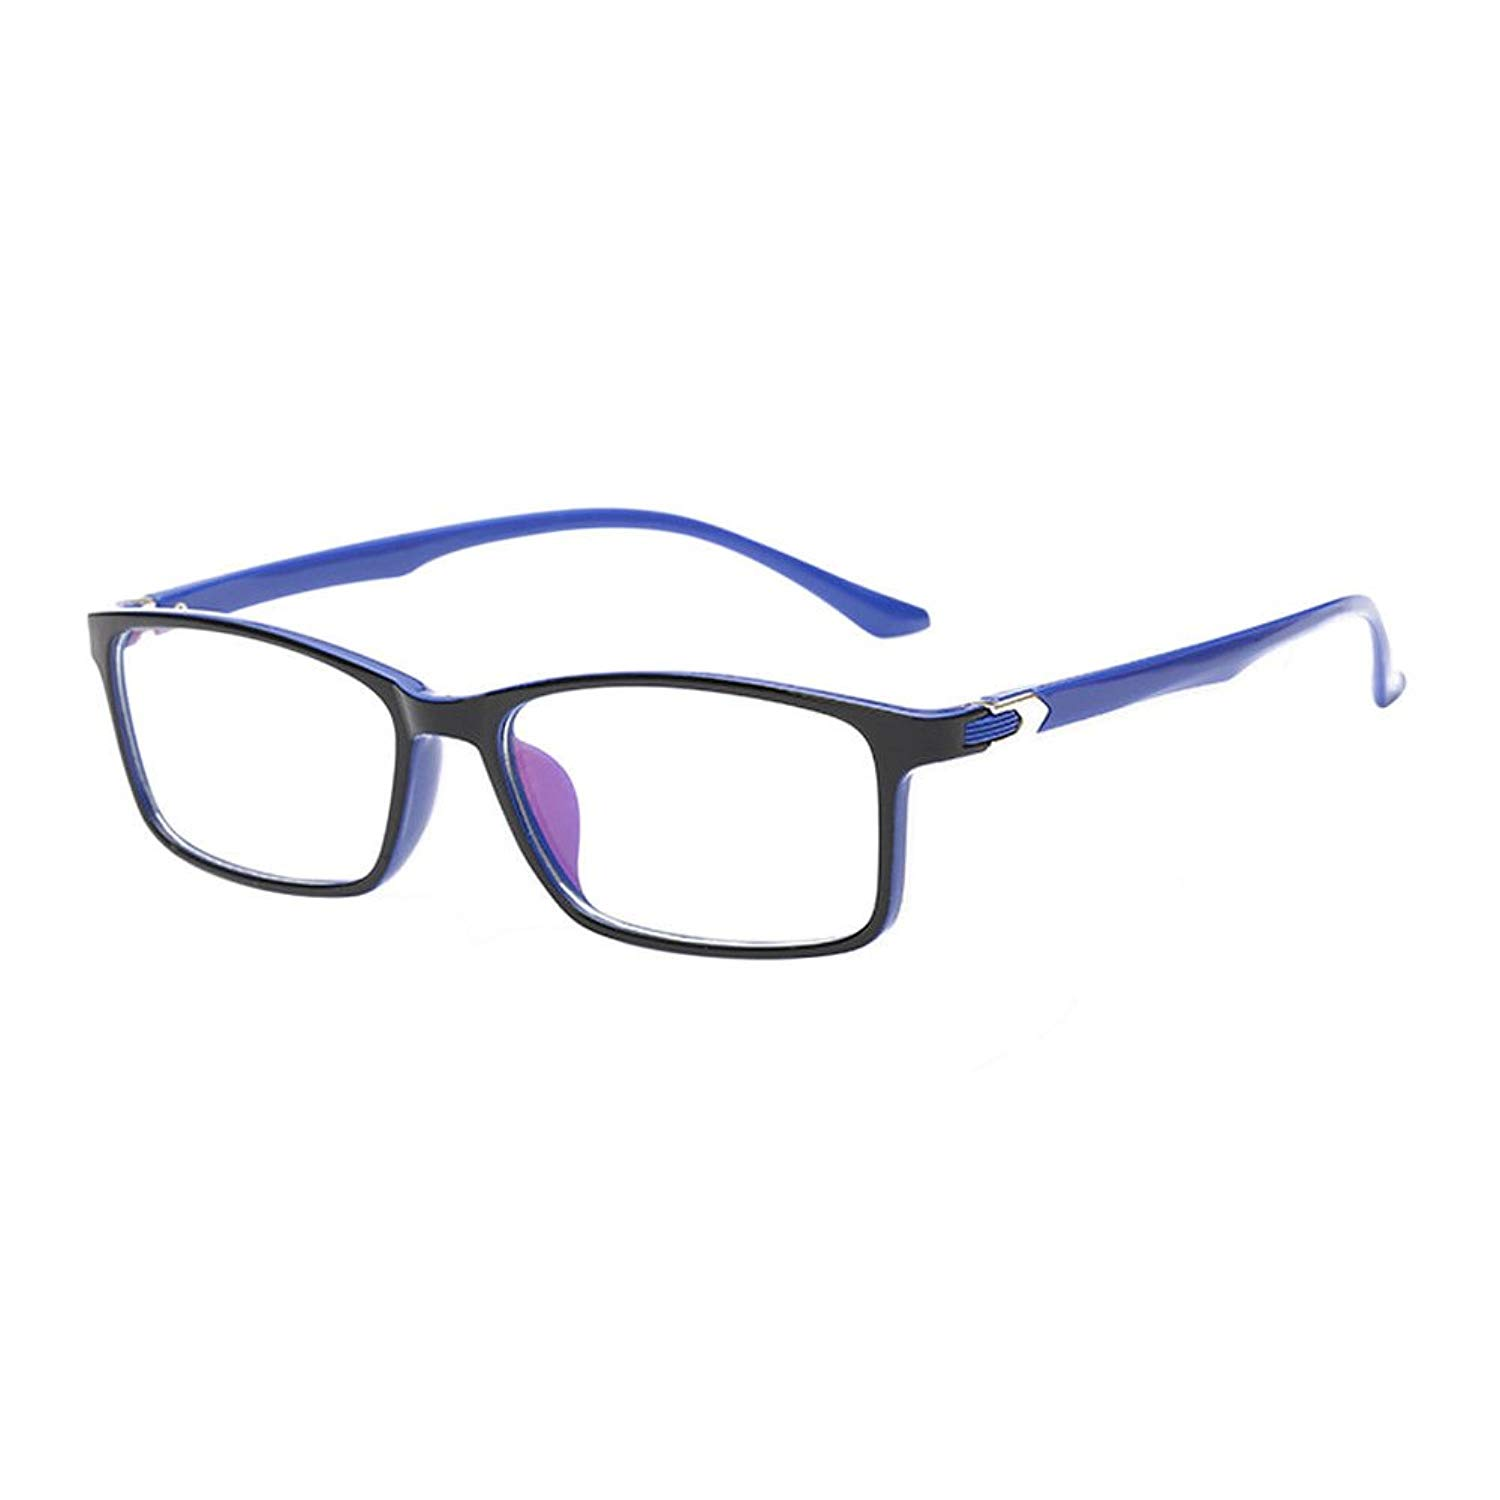 92bf6f2921ae Xinvision Ultra Light Colorful Frame Myopia Glasses, Women Men Shortsighted  Eyeglasses Nearsighted Goggles Spectacles Eyewear -0.5~-6.00